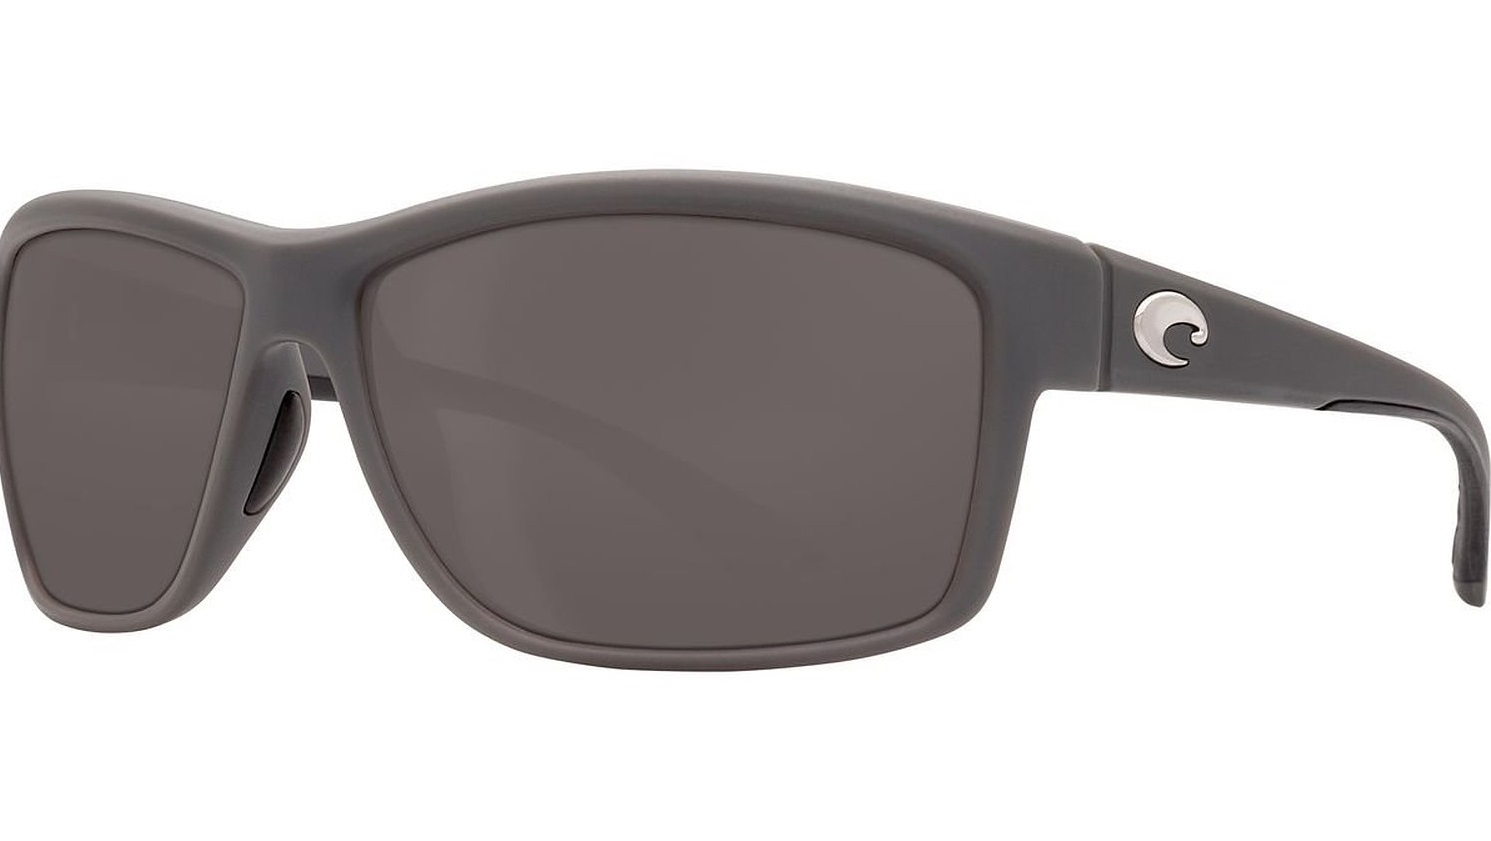 Costa Del Mar Mag Bay Polarized Matte Gray Sunglasses - AA-98-OGGLP